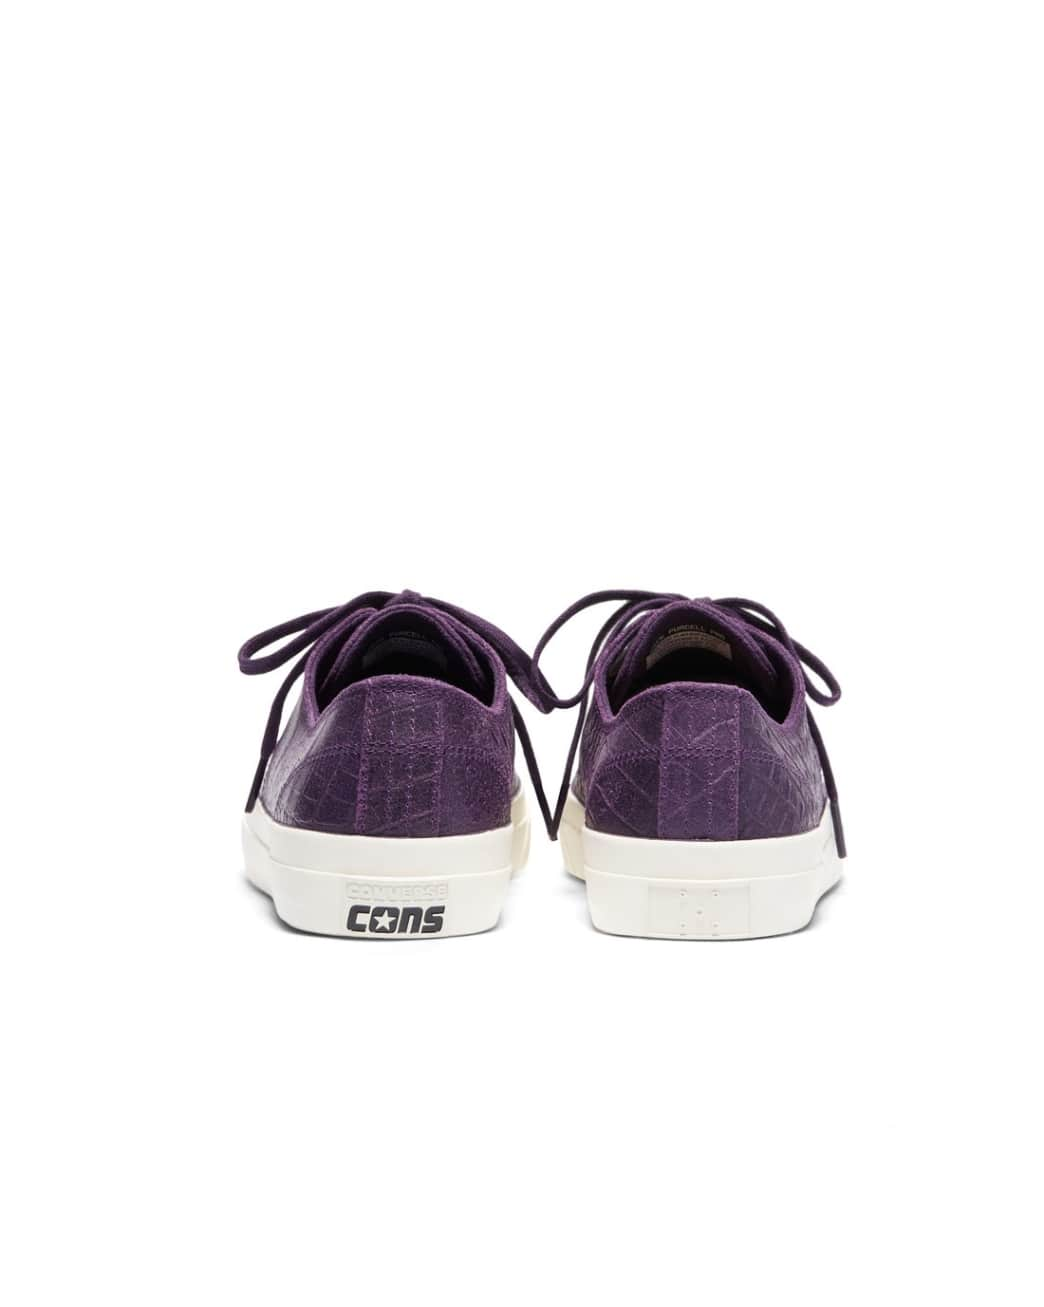 Converse CONS x Pop Trading Company JP Pro Ox Shoes - Dark Purple 'Dragonskin' | Shoes by Converse Cons 4